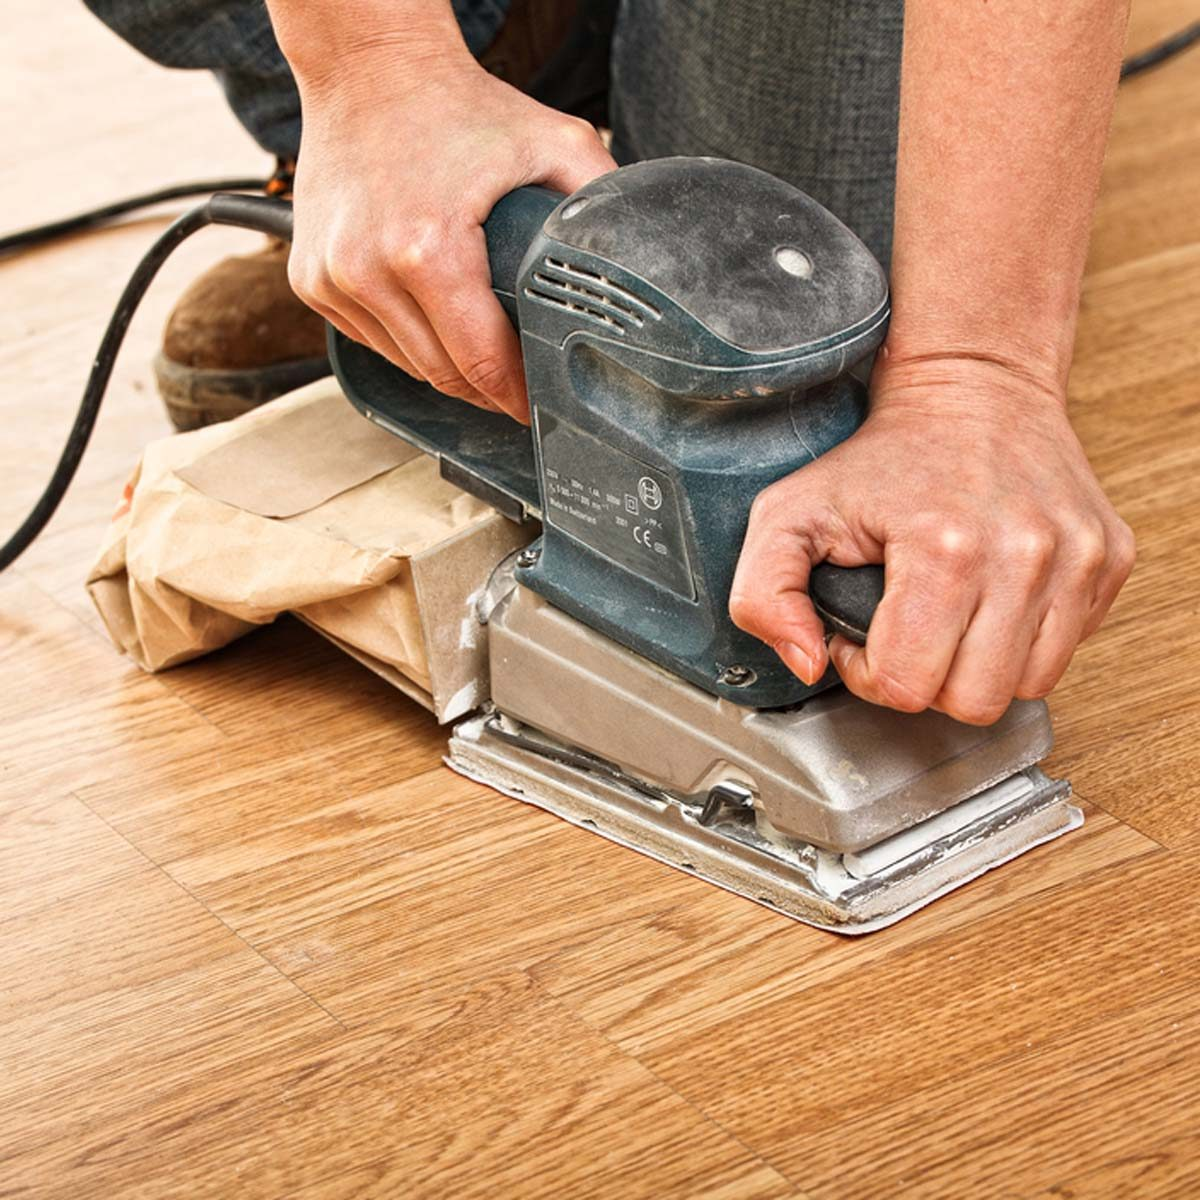 dfh9_shutterstock_76877482 sanding down wood floor scratches and imperfections refinishing